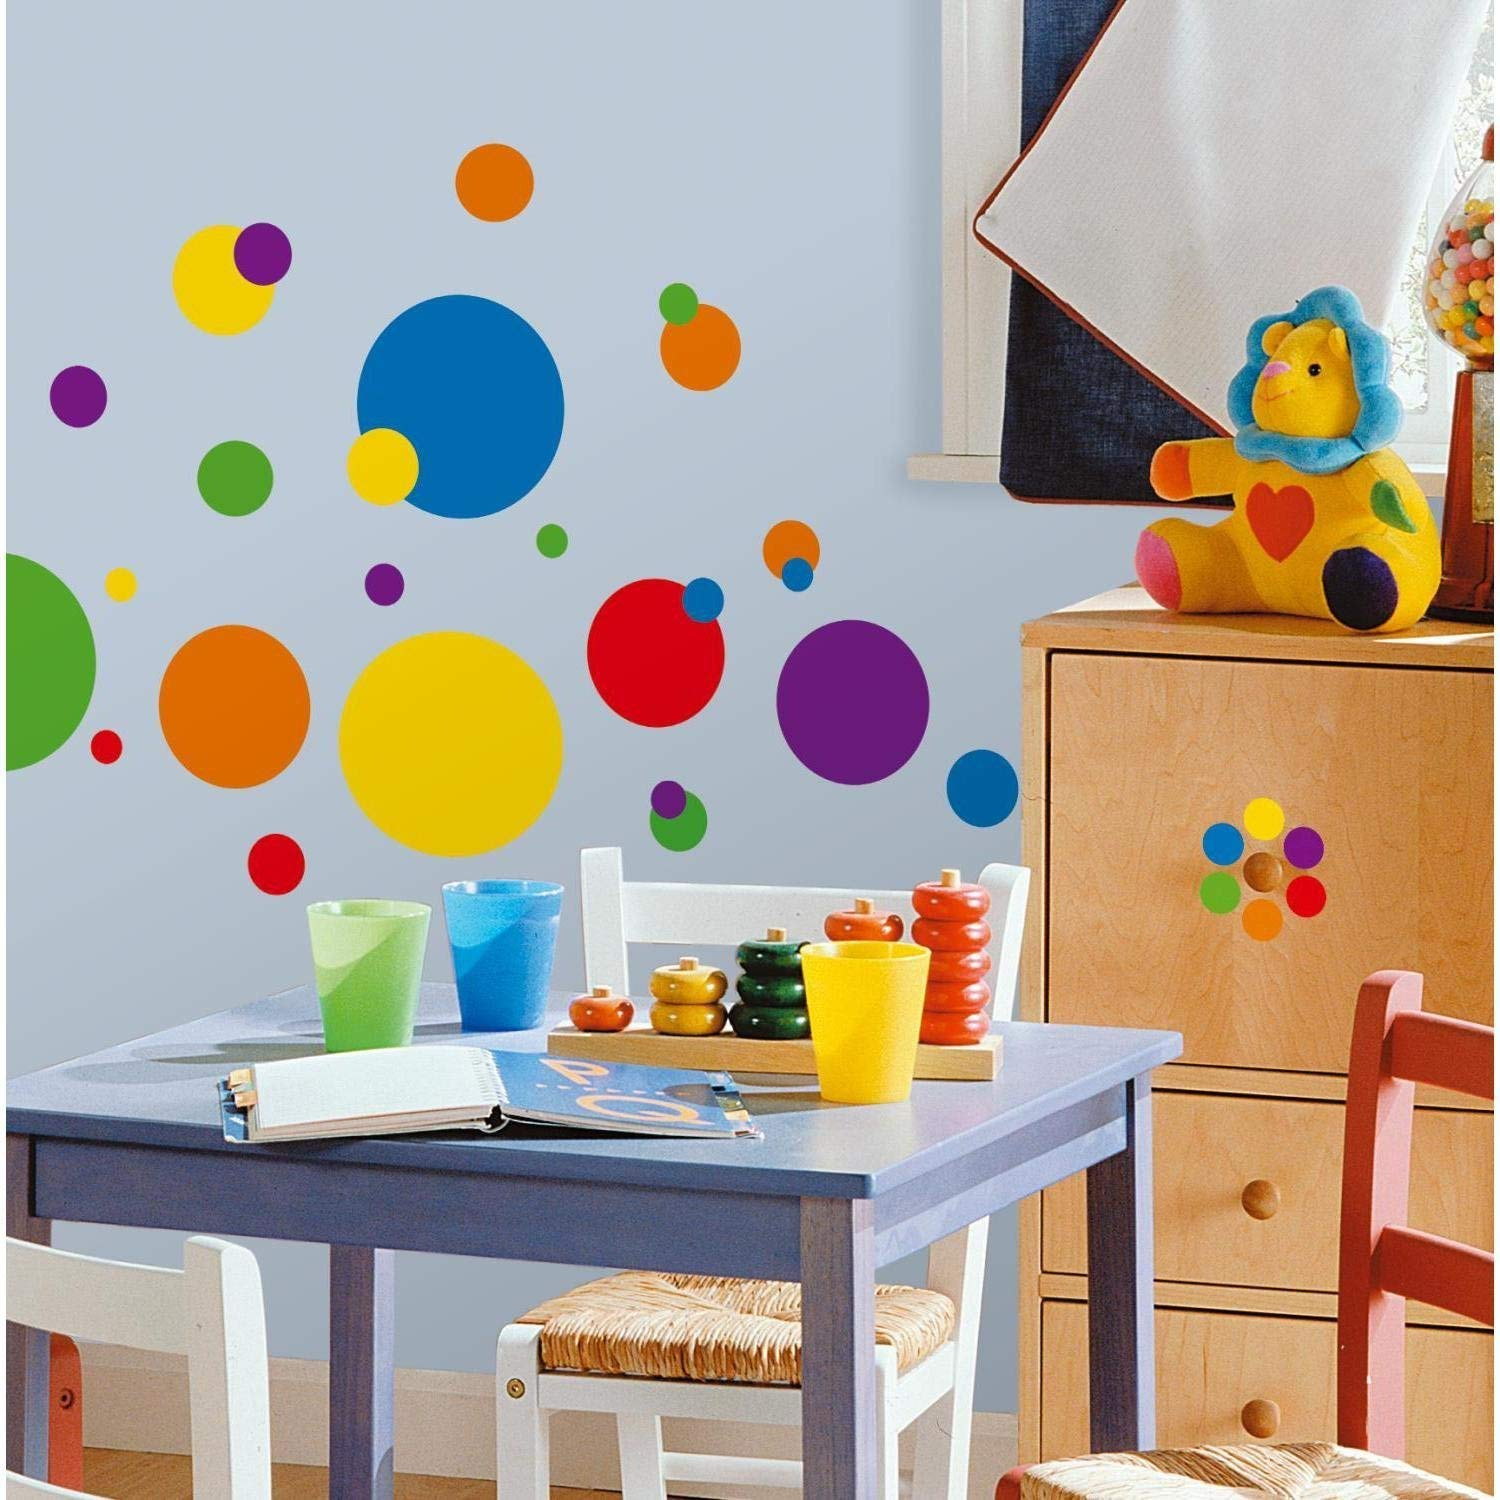 RoomMates Colorful Dots Peel and Stick Wall Decals